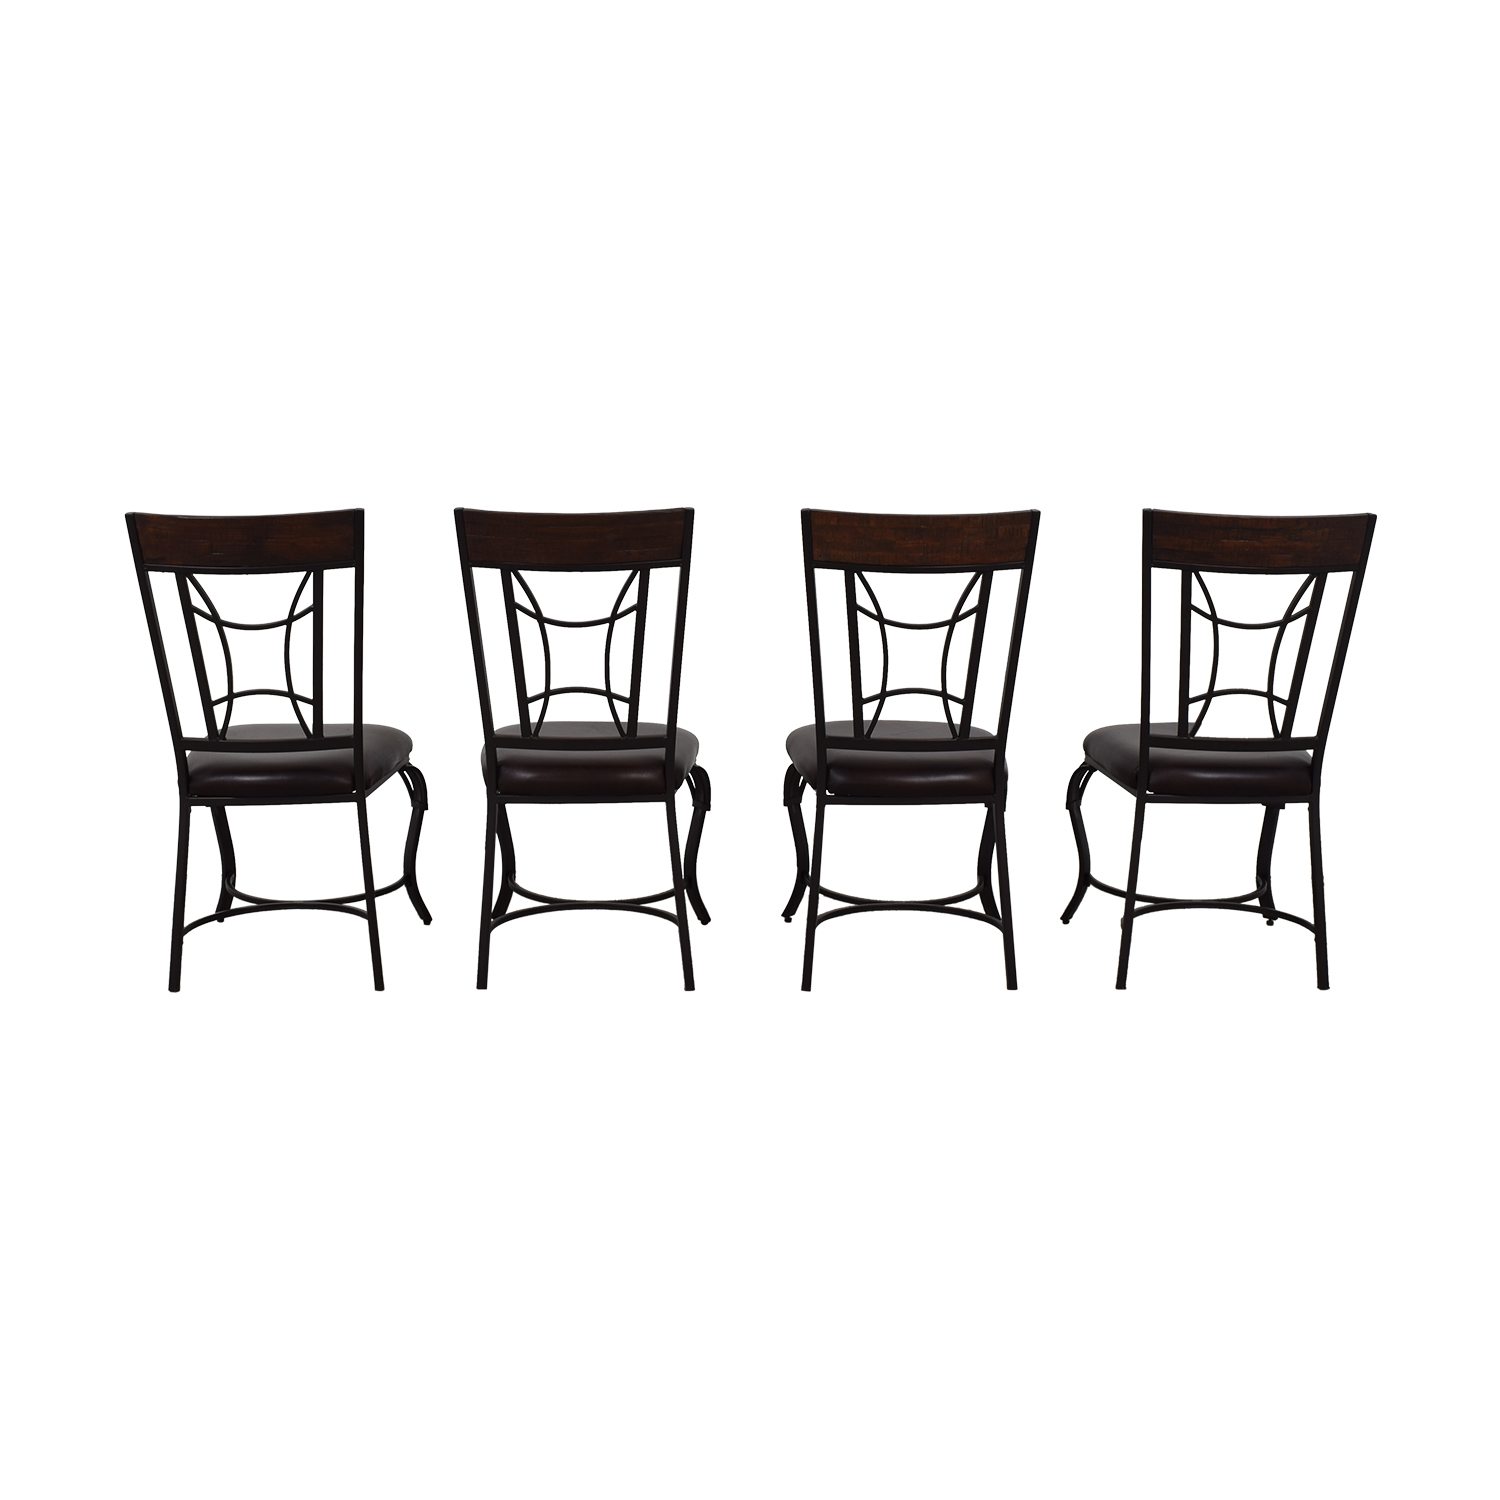 Hillsdale Furniture Hillsdale Furniture Dining Chairs Dining Chairs